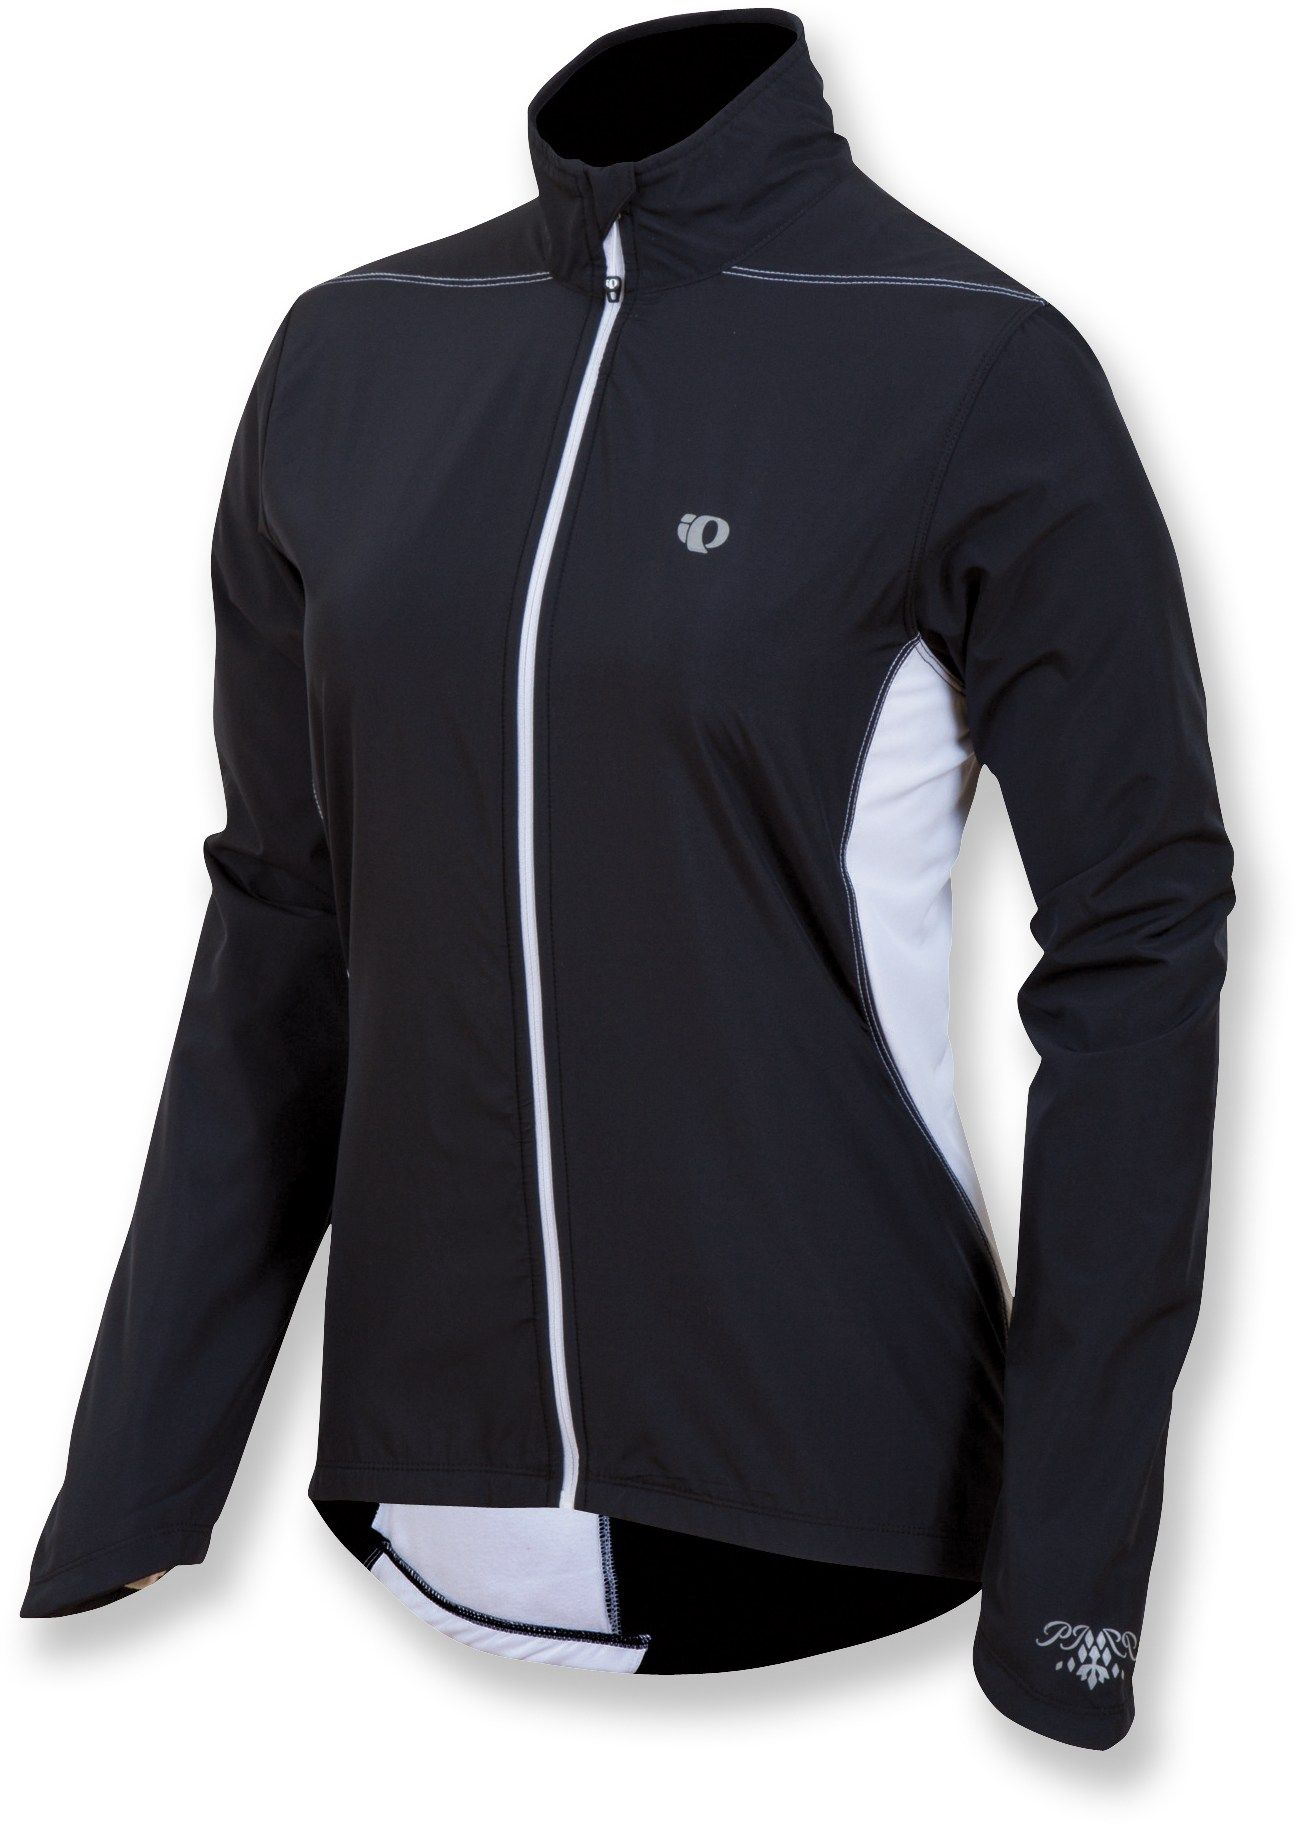 Pearl Izumi SELECT Thermal Barrier Bike Jacket for cold